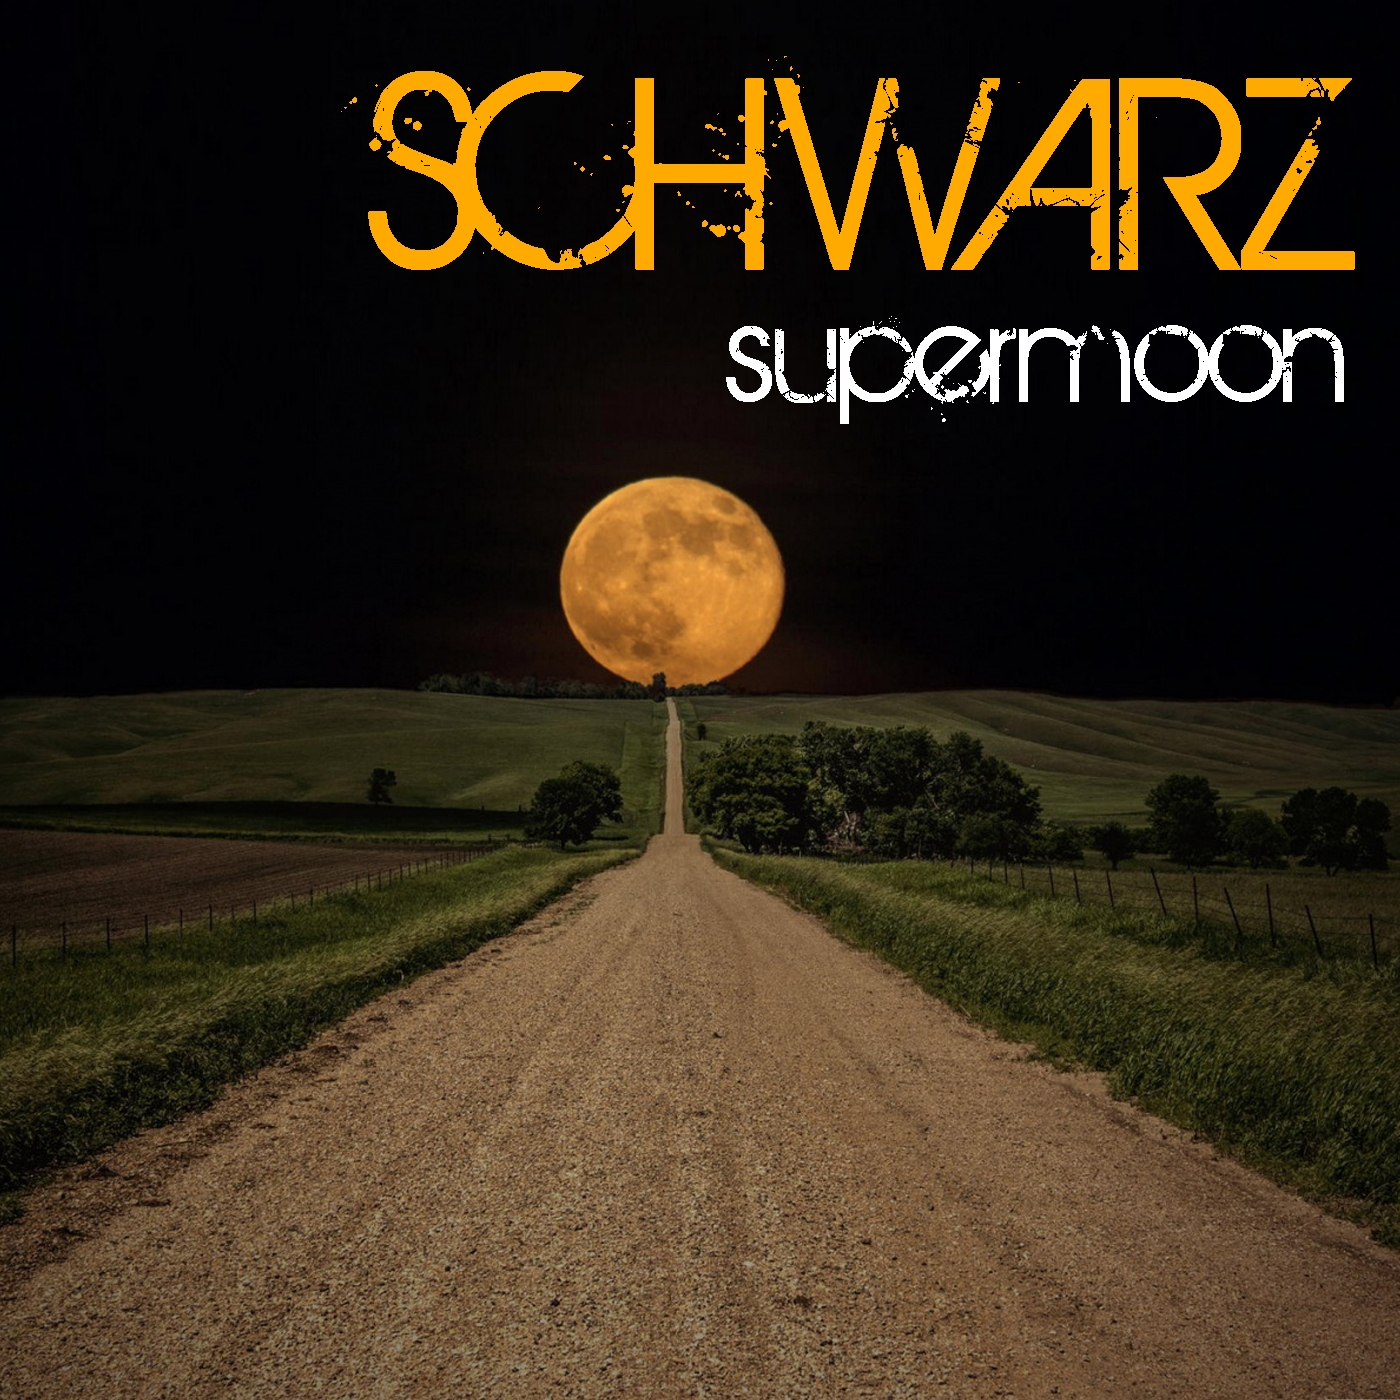 Schwarz - The Mechanic (Original Mix)